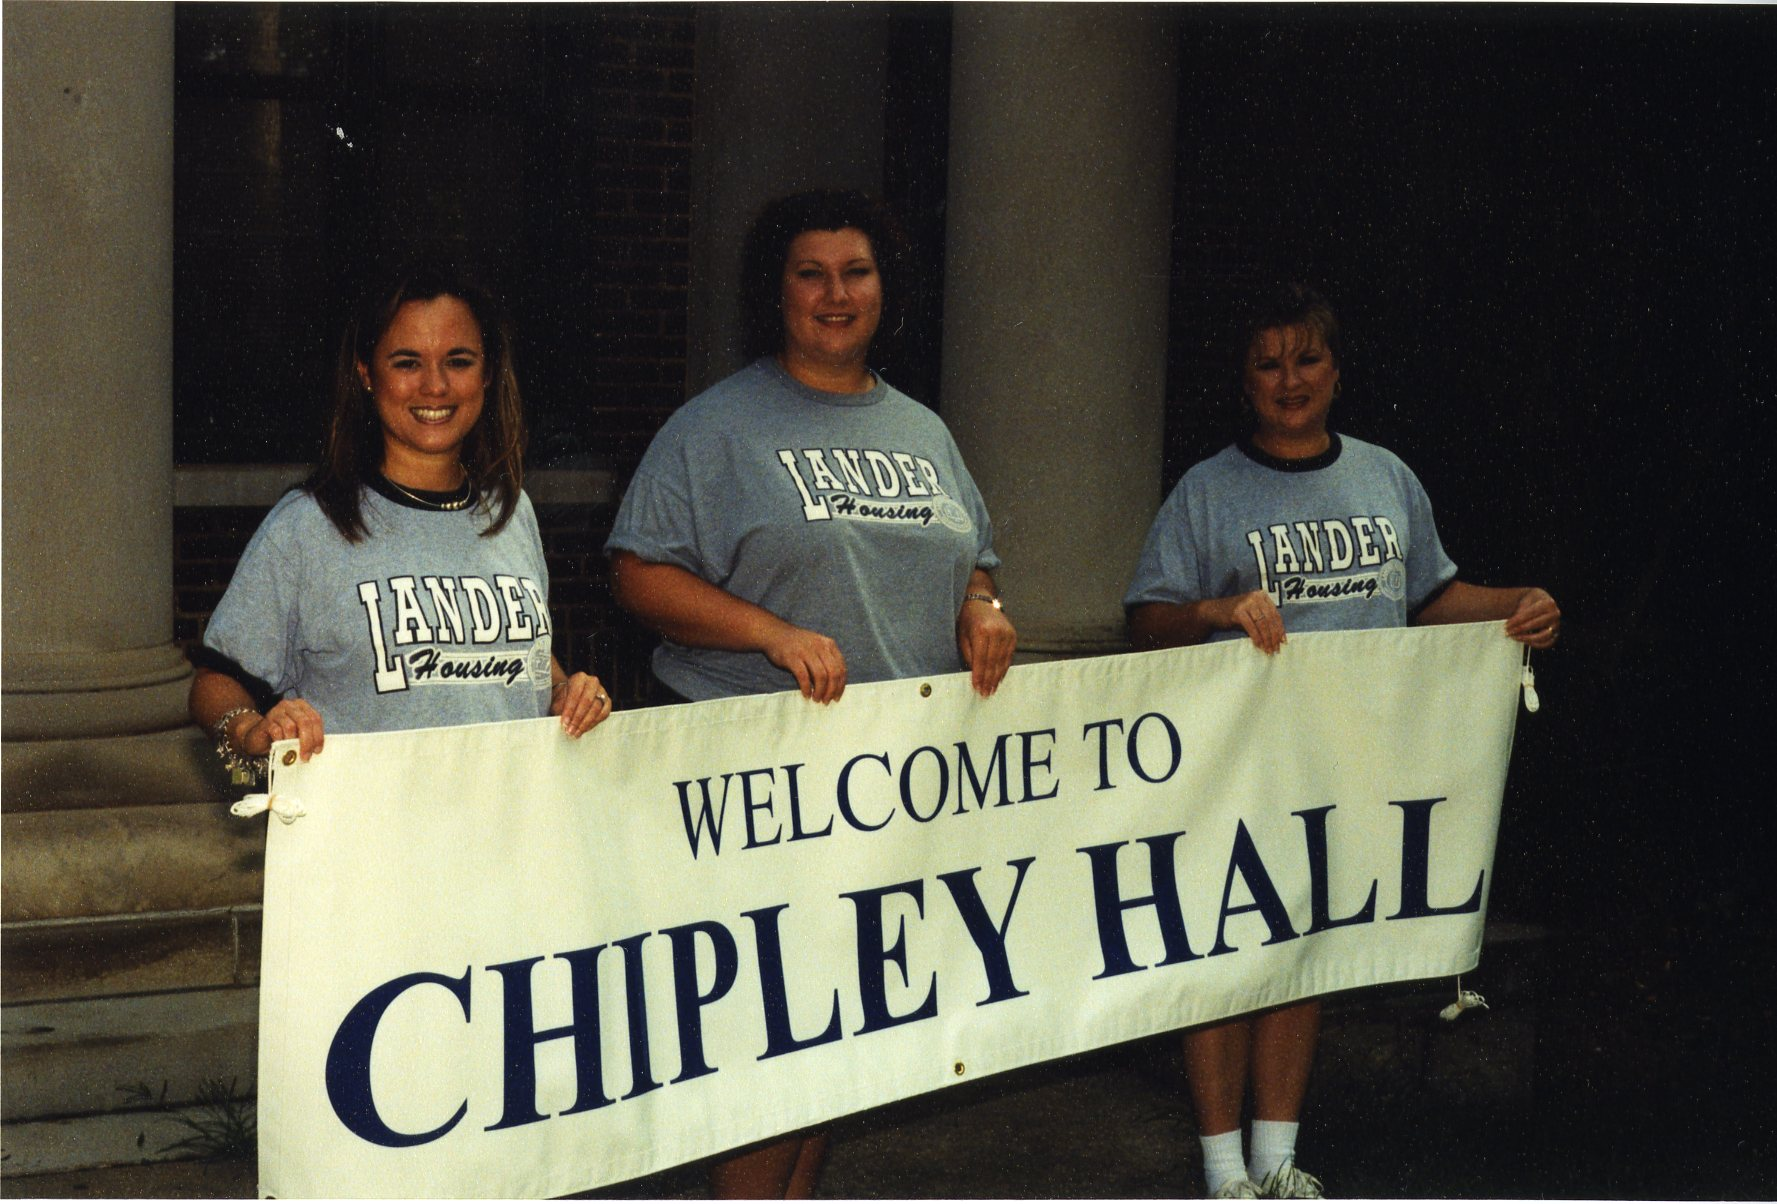 Archive shot of students welcoming students to Chipley Hall